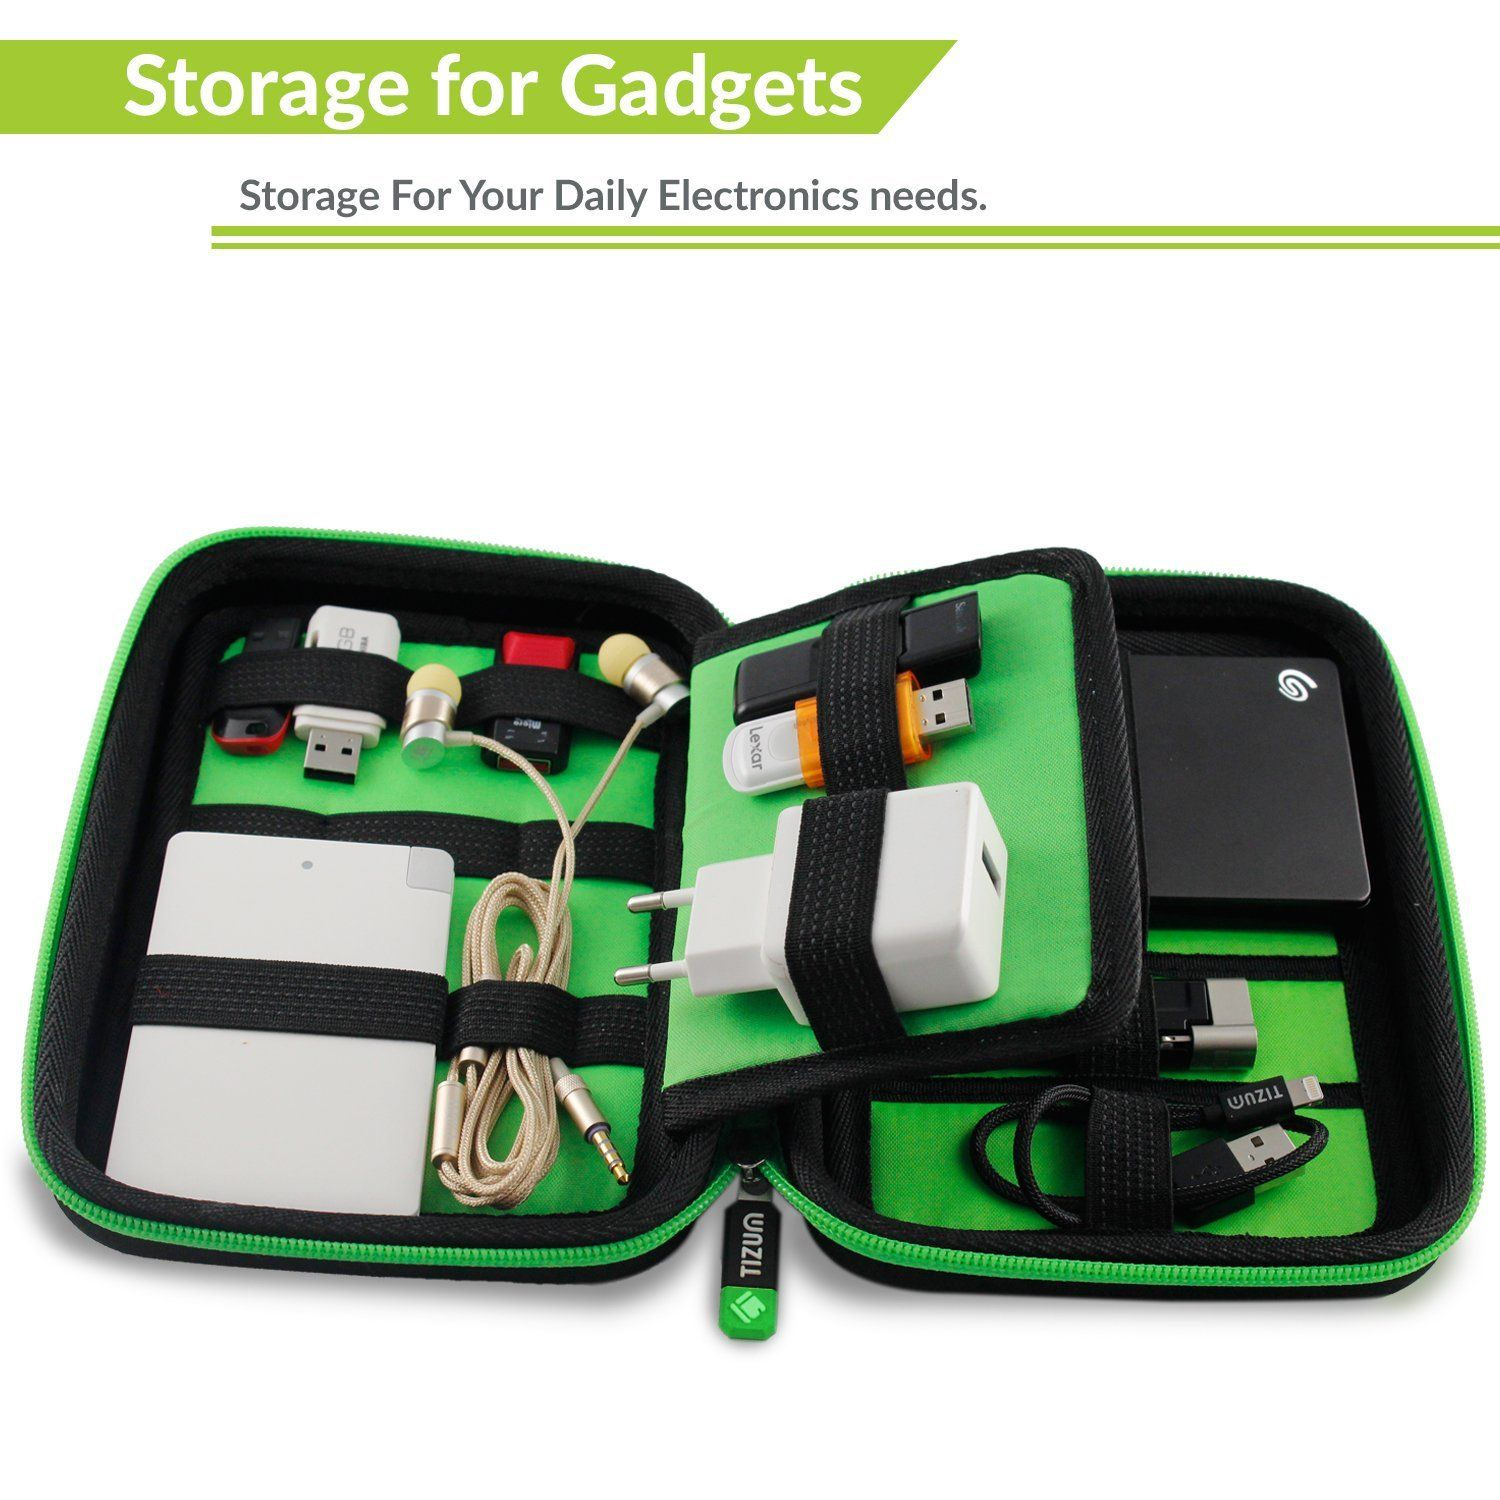 Portable Universal Electronics Travel Organizer Gadget Accessories Carry Bag Rugged Shock Proof